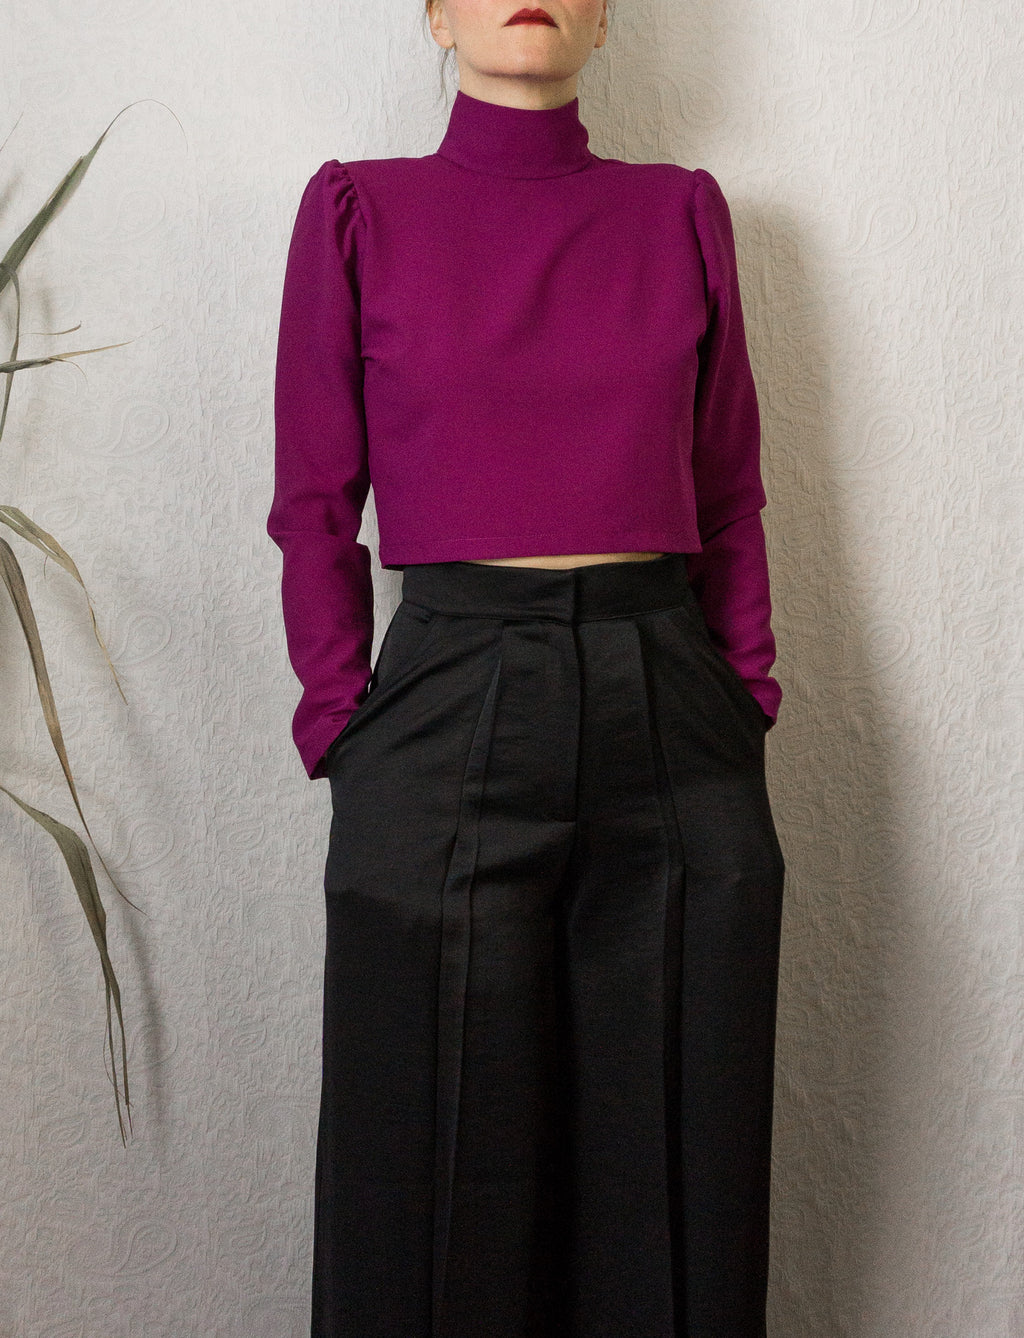 Top court fuchsia à col montant et manches bouffantes ~ Fuchsia pink crop top with high collar and puffed sleeves